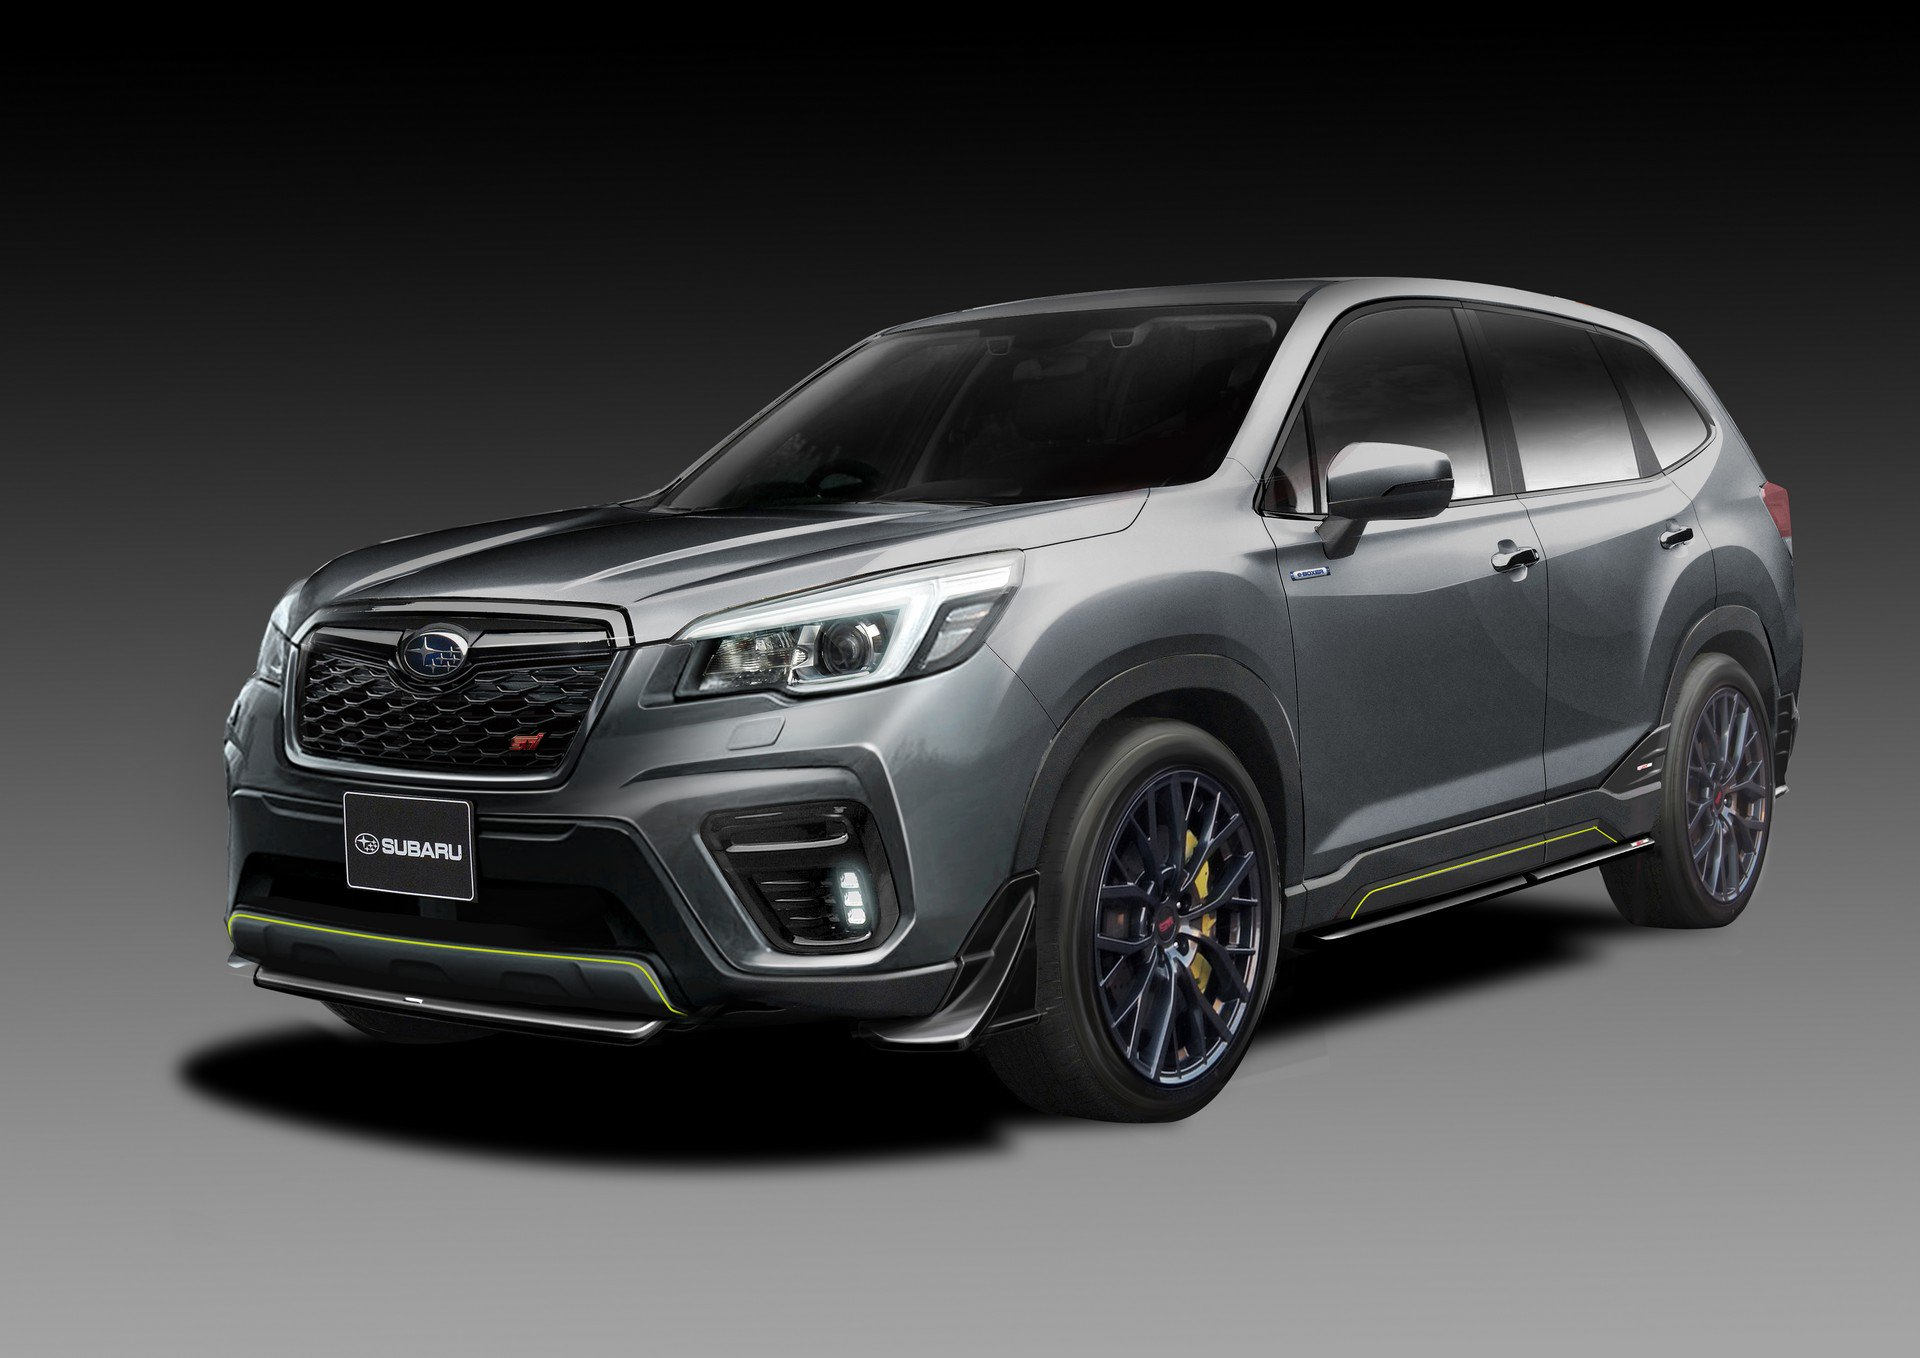 Subaru Shows STI S209 Front Grille Ahead of NAIAS Debut ...